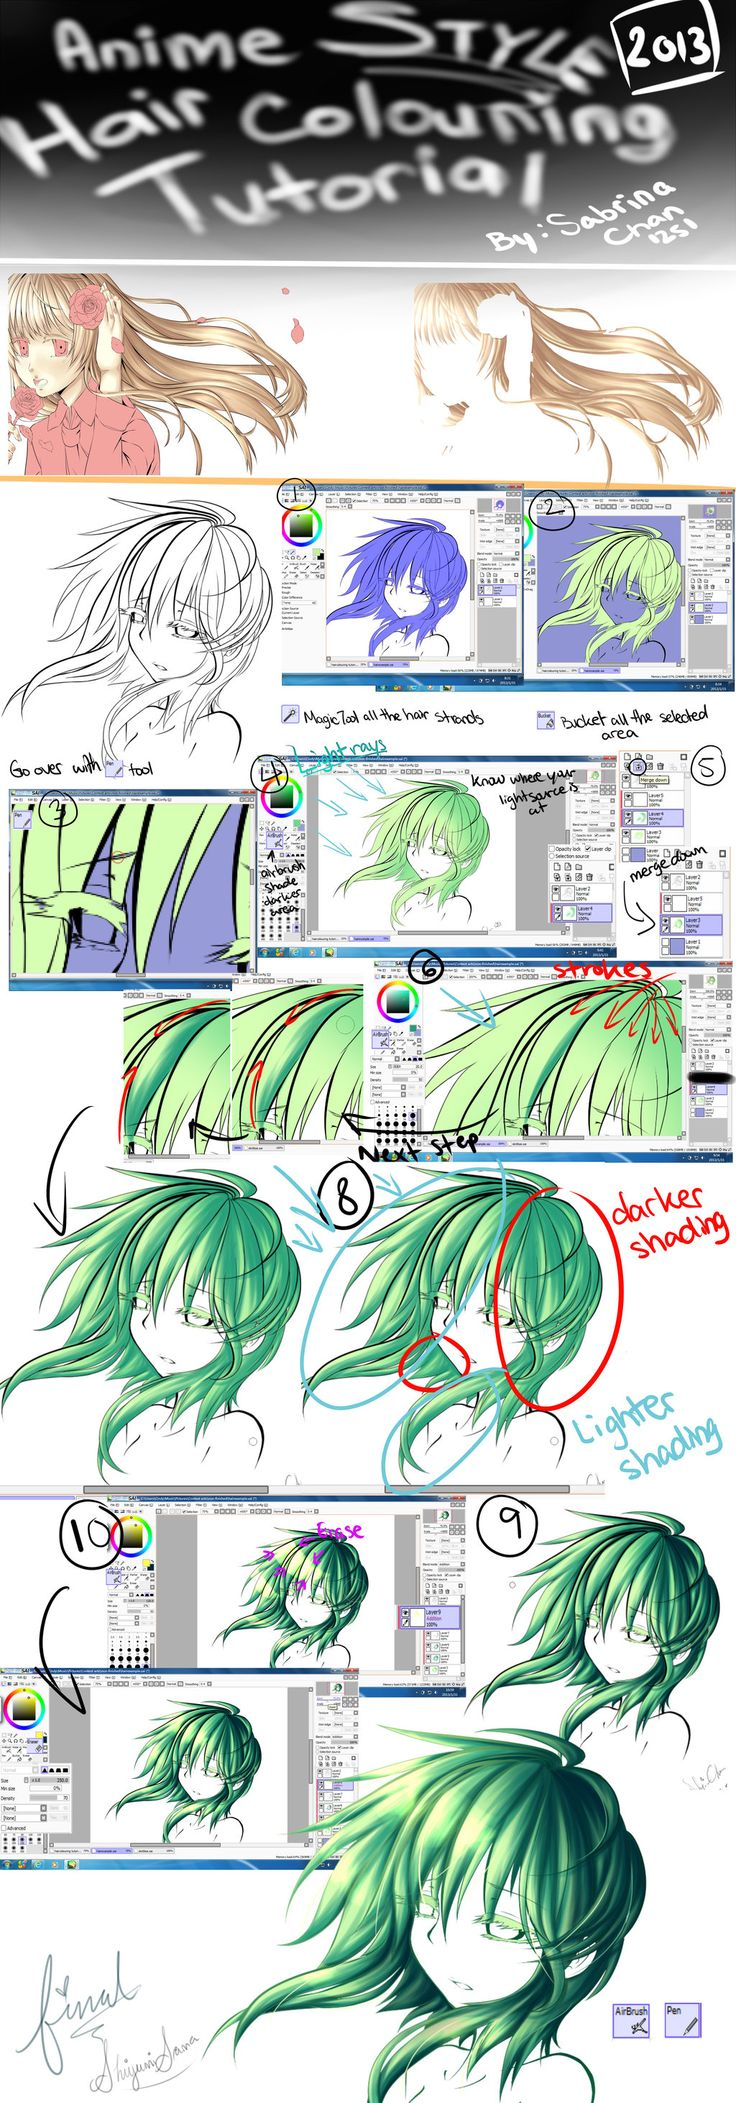 ShiyumiSama: Hair Colouring Tutorial by SabrinaTang